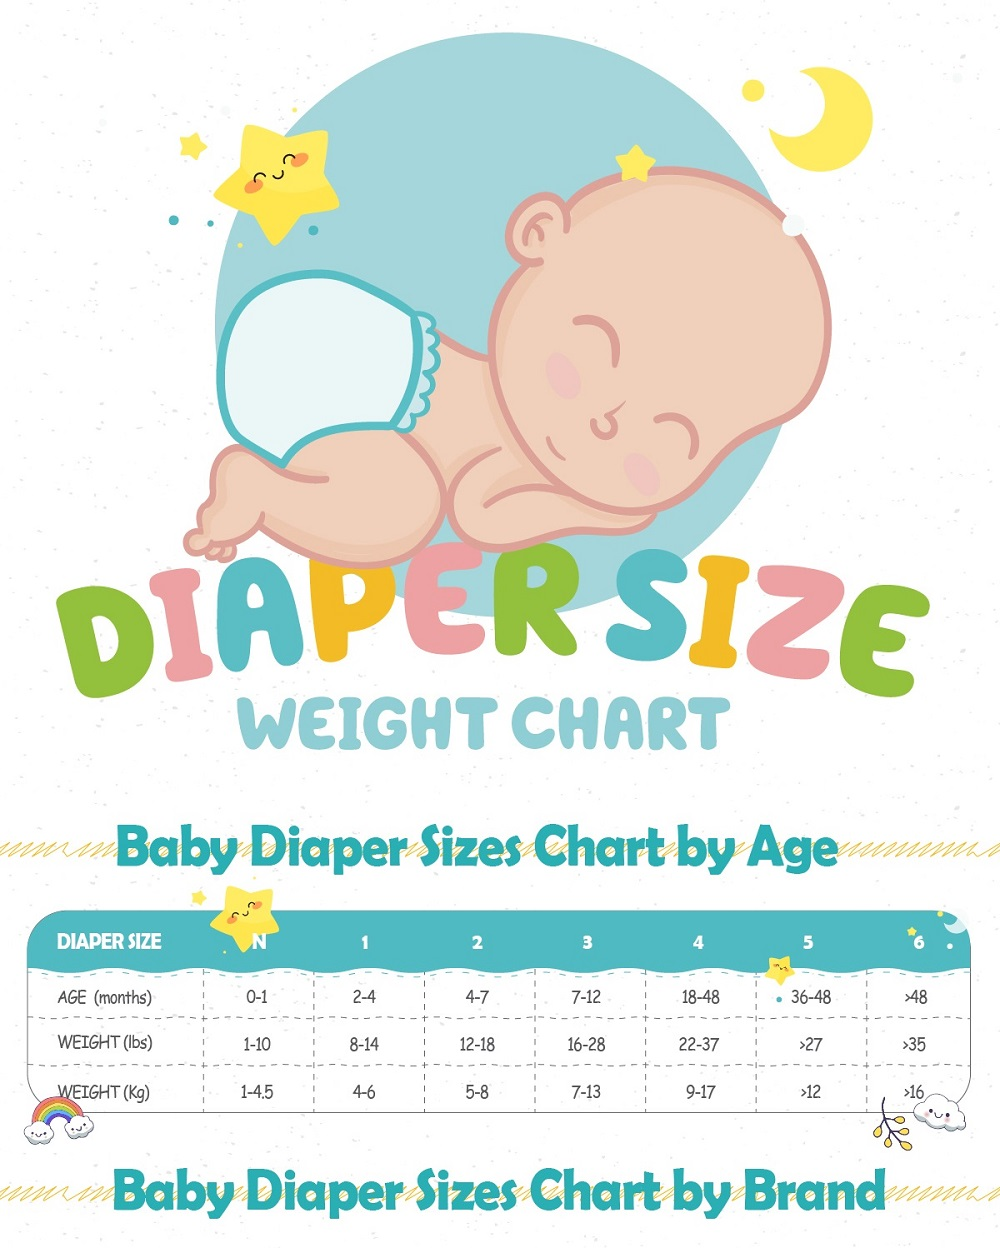 5 tips to choose the right diaper for babyDiaper Size Weight Chart Brands